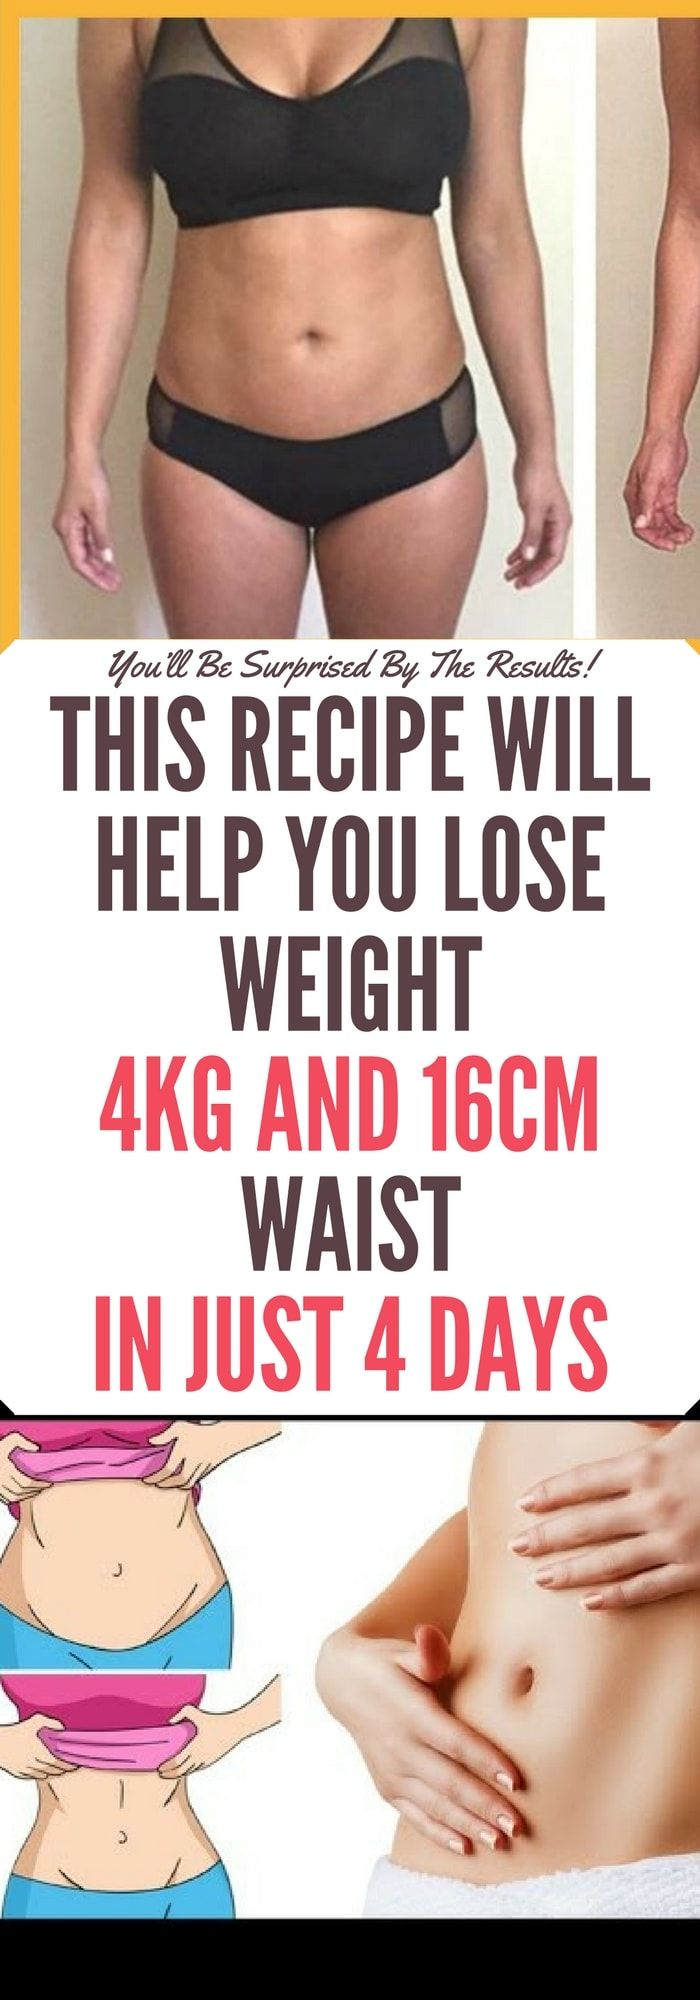 This Recipe Will Help You Lose Weight 4kg and 16cm Waist in Just 4 Days !! Read!!  #fitnessgirl #fitnessmom #transformations #fitnesslife #abs #train #healthy #healthylifestyle #sisepuede #tattoo #tattoossometimes #fridaynight #gymsession #weightloss #legsgains #ladybeast #triplet #fitnessjourney #fitnesslifestyle #fitnessfreak #girlswholift #nopainnogain #getstrong #mondaymiles #chestday #seenonmyrun #trainhard #strengthtraining #physiquefreak #catsofinstagram